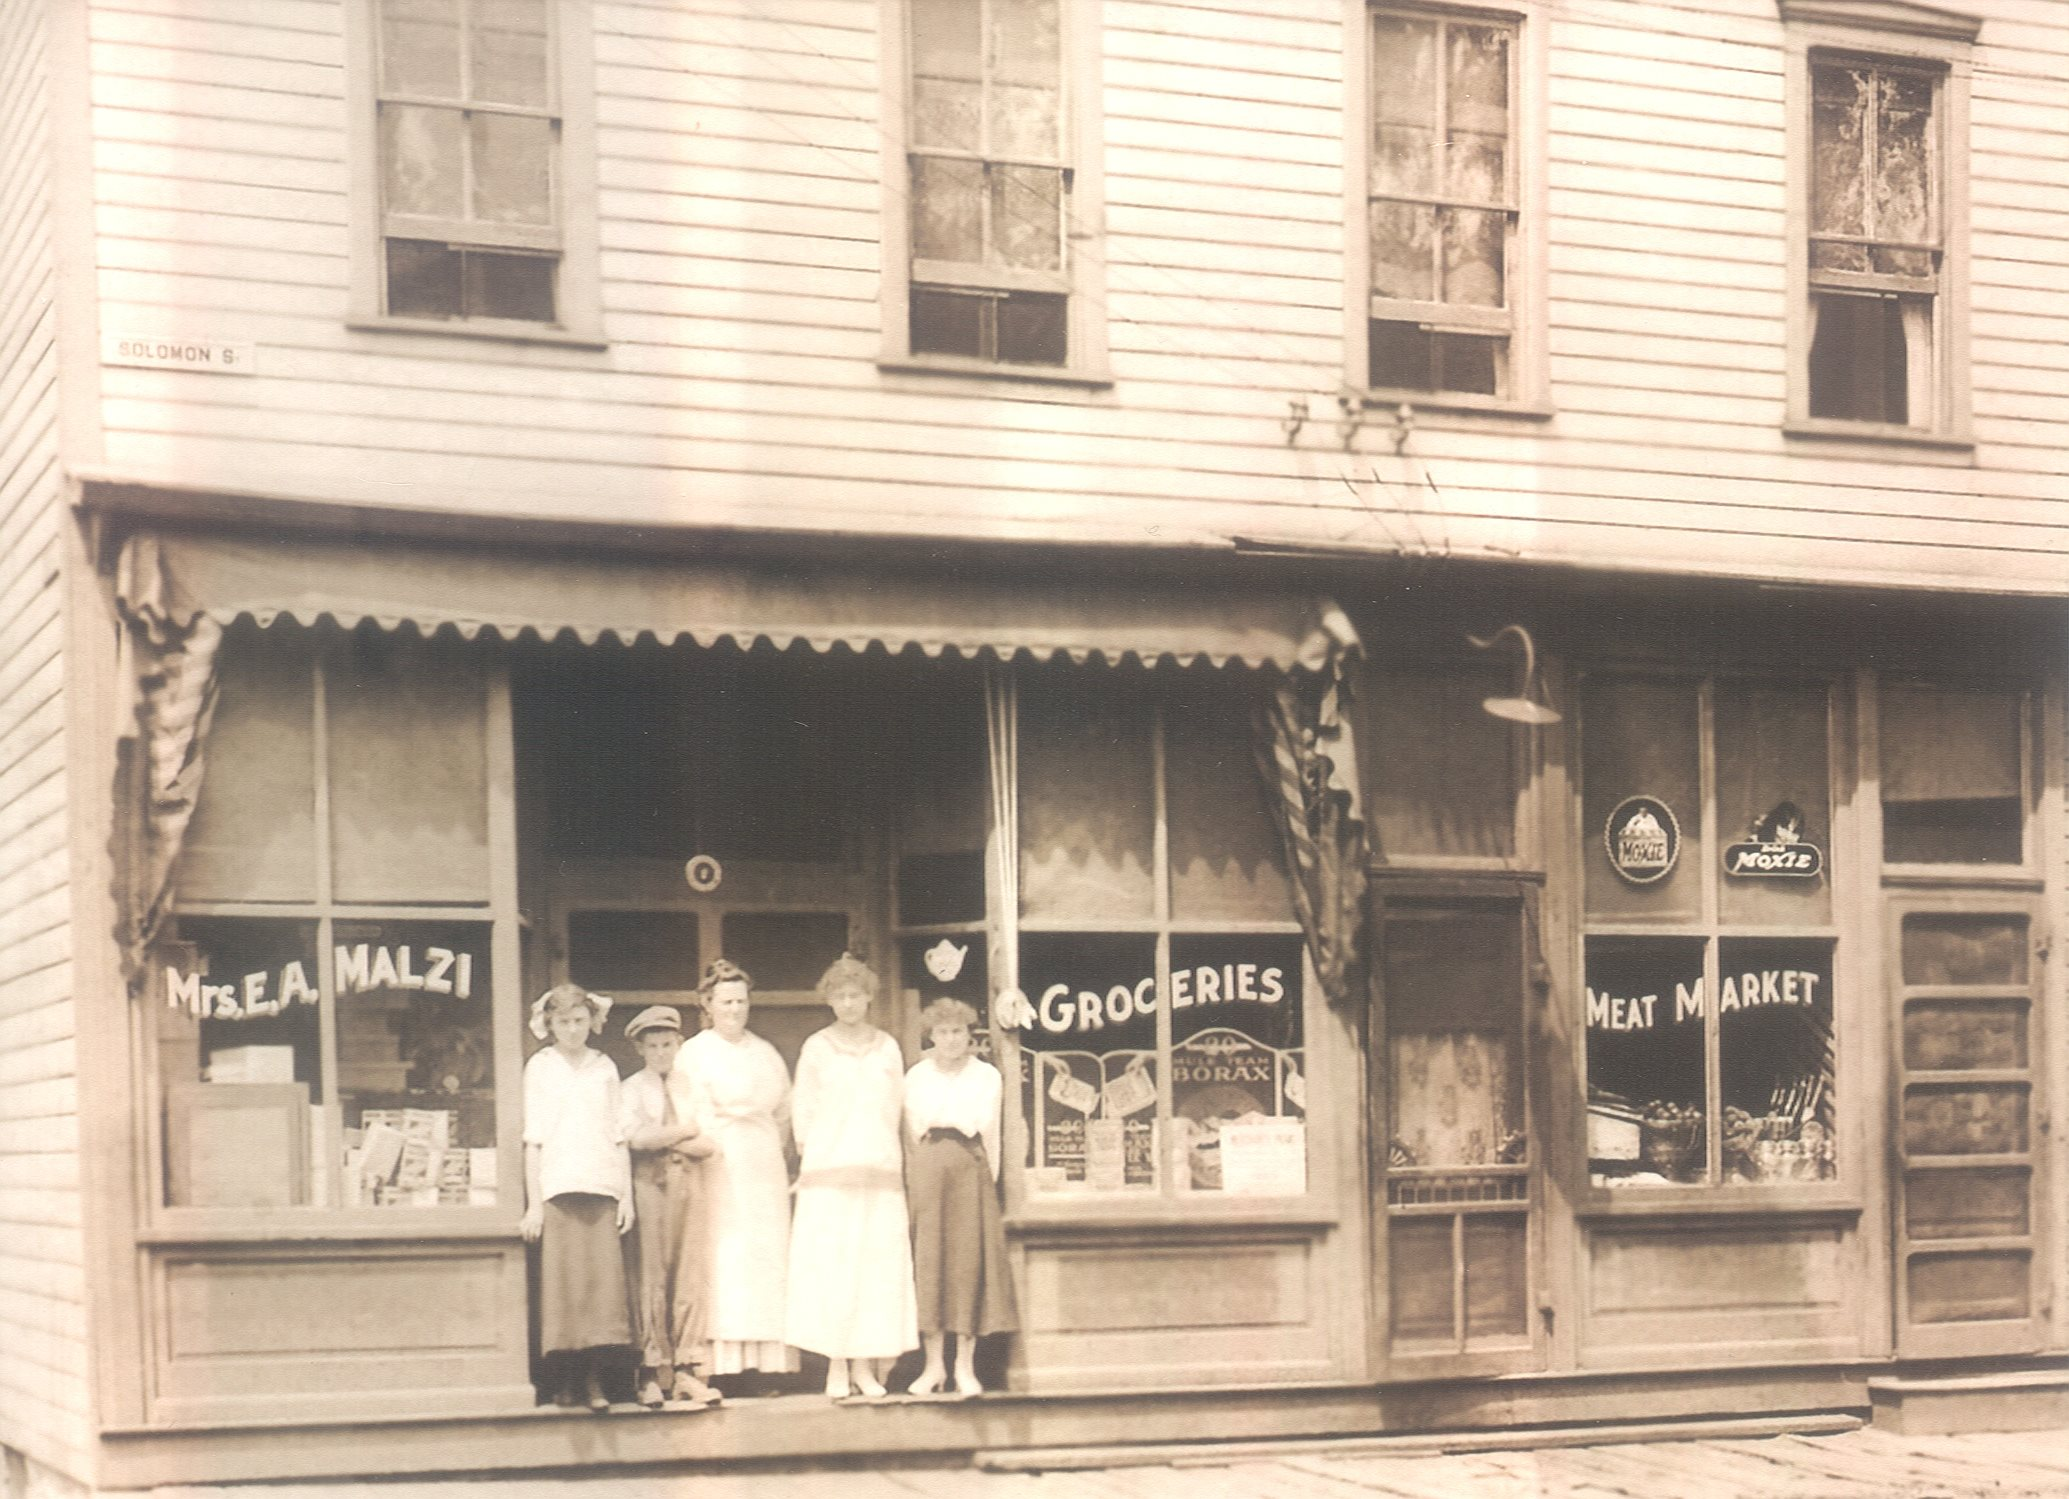 Mrs. E. A. Malzi - Groceries and Meat Market